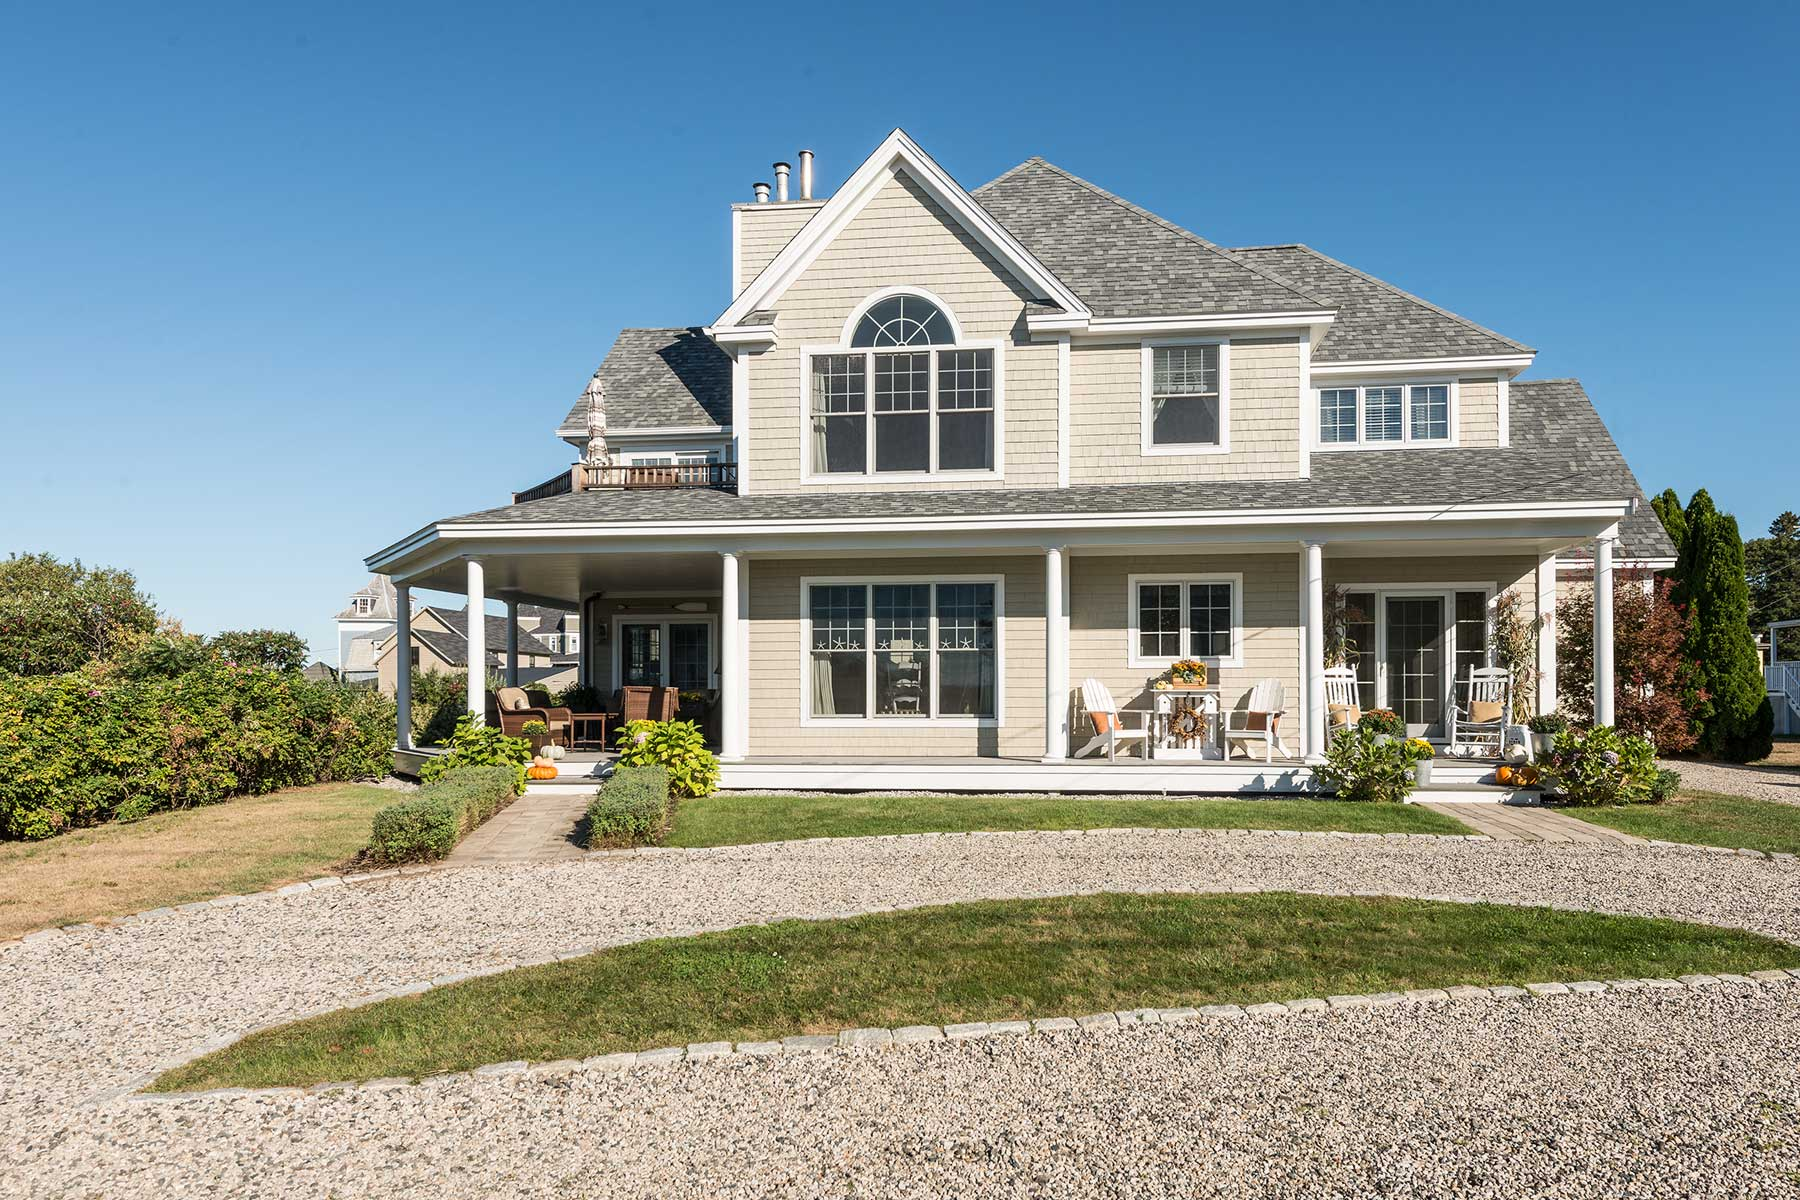 Single Family Home for Sale at Ocean View Shingle Style - Walk to Short Sands Beach 1 Ravine Avenue York, Maine, 03909 United States